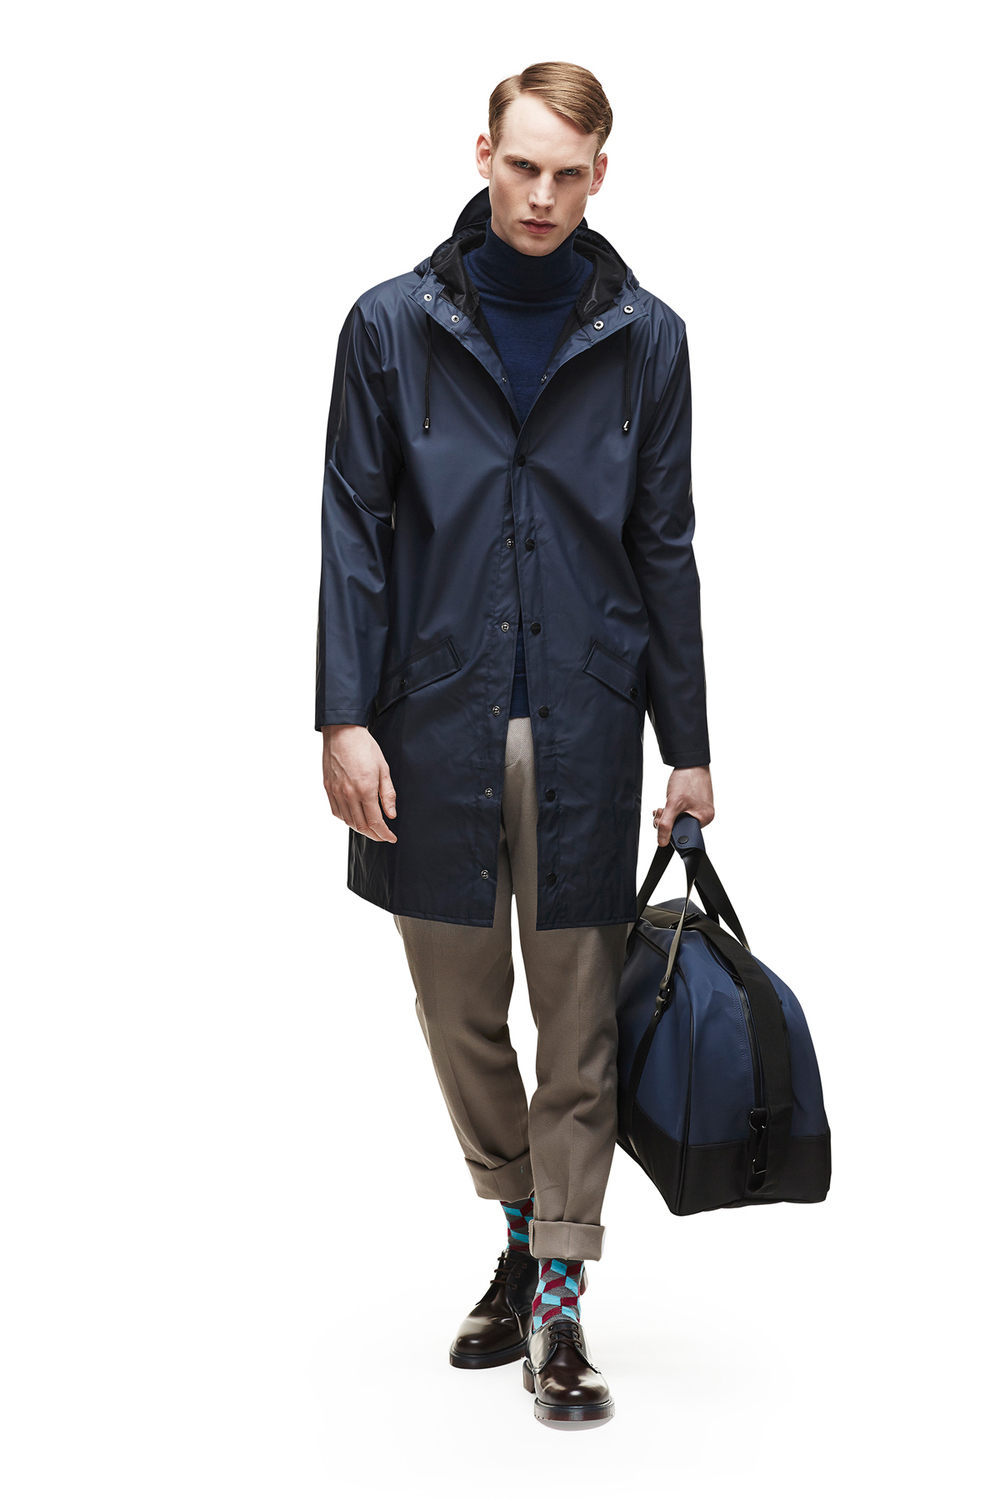 rains-2014-fall-winter-collection-4.jpg